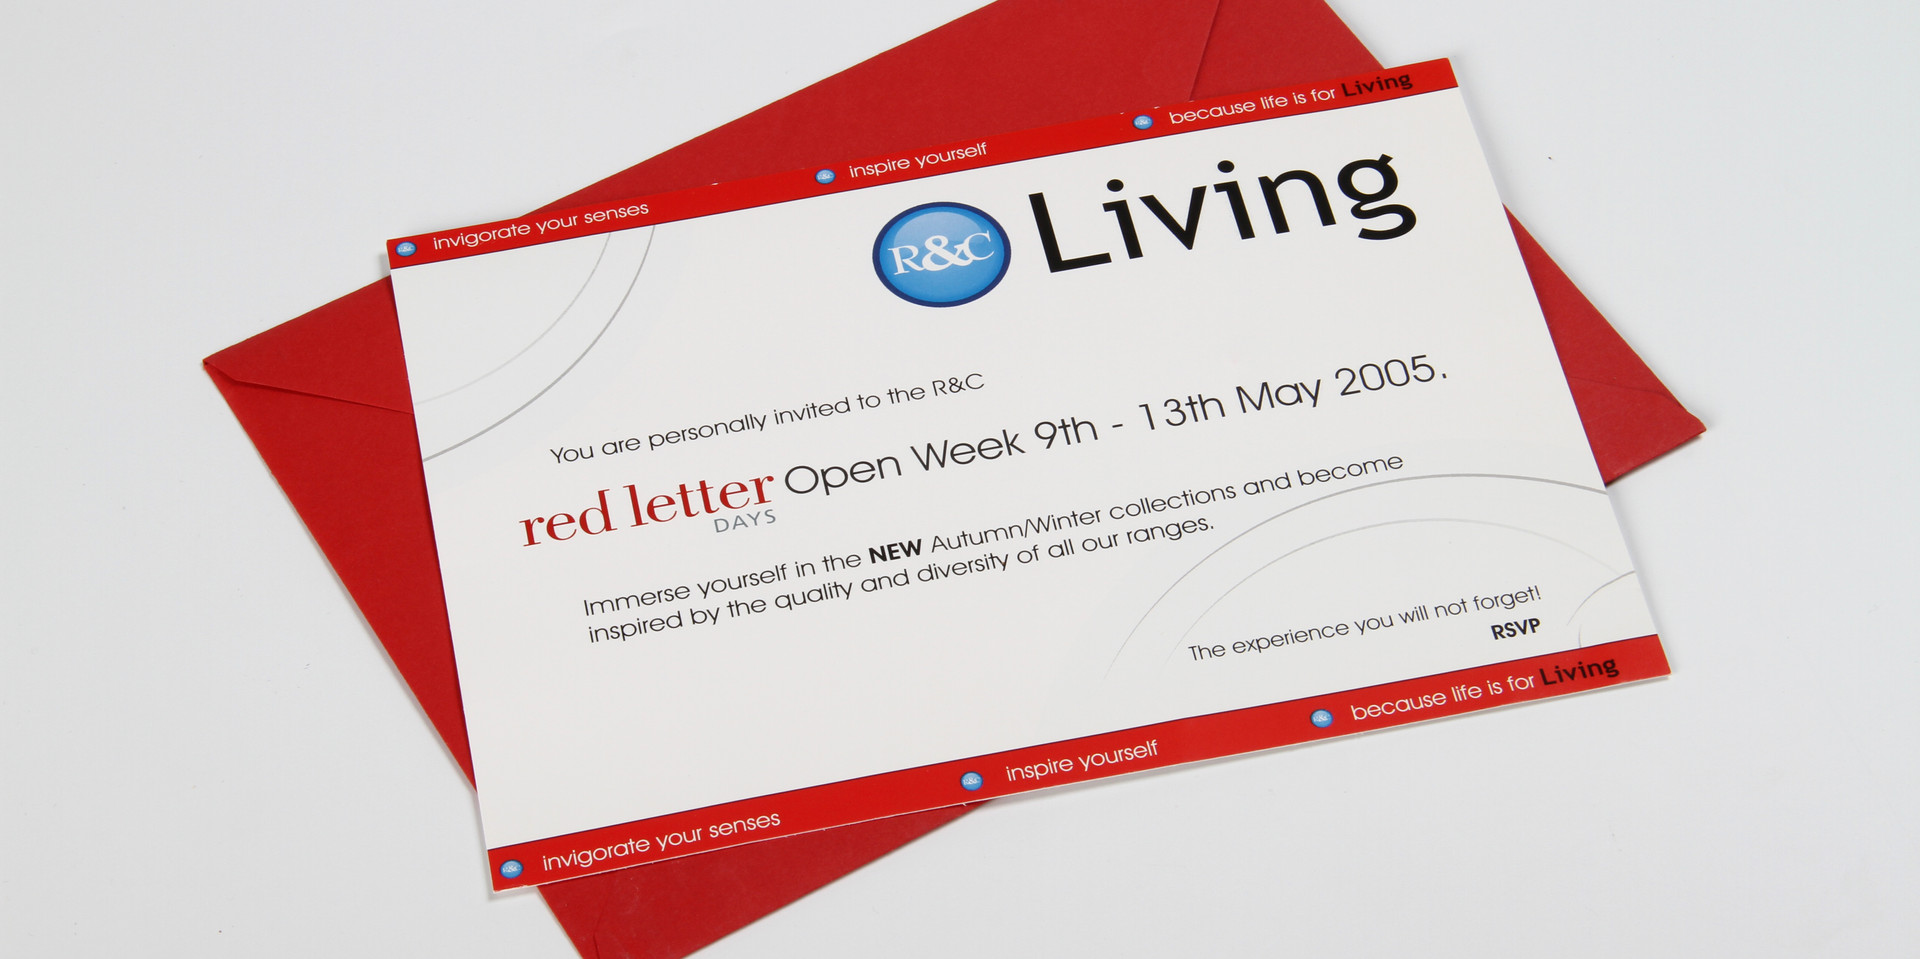 R&C Living Red Letter Invitation